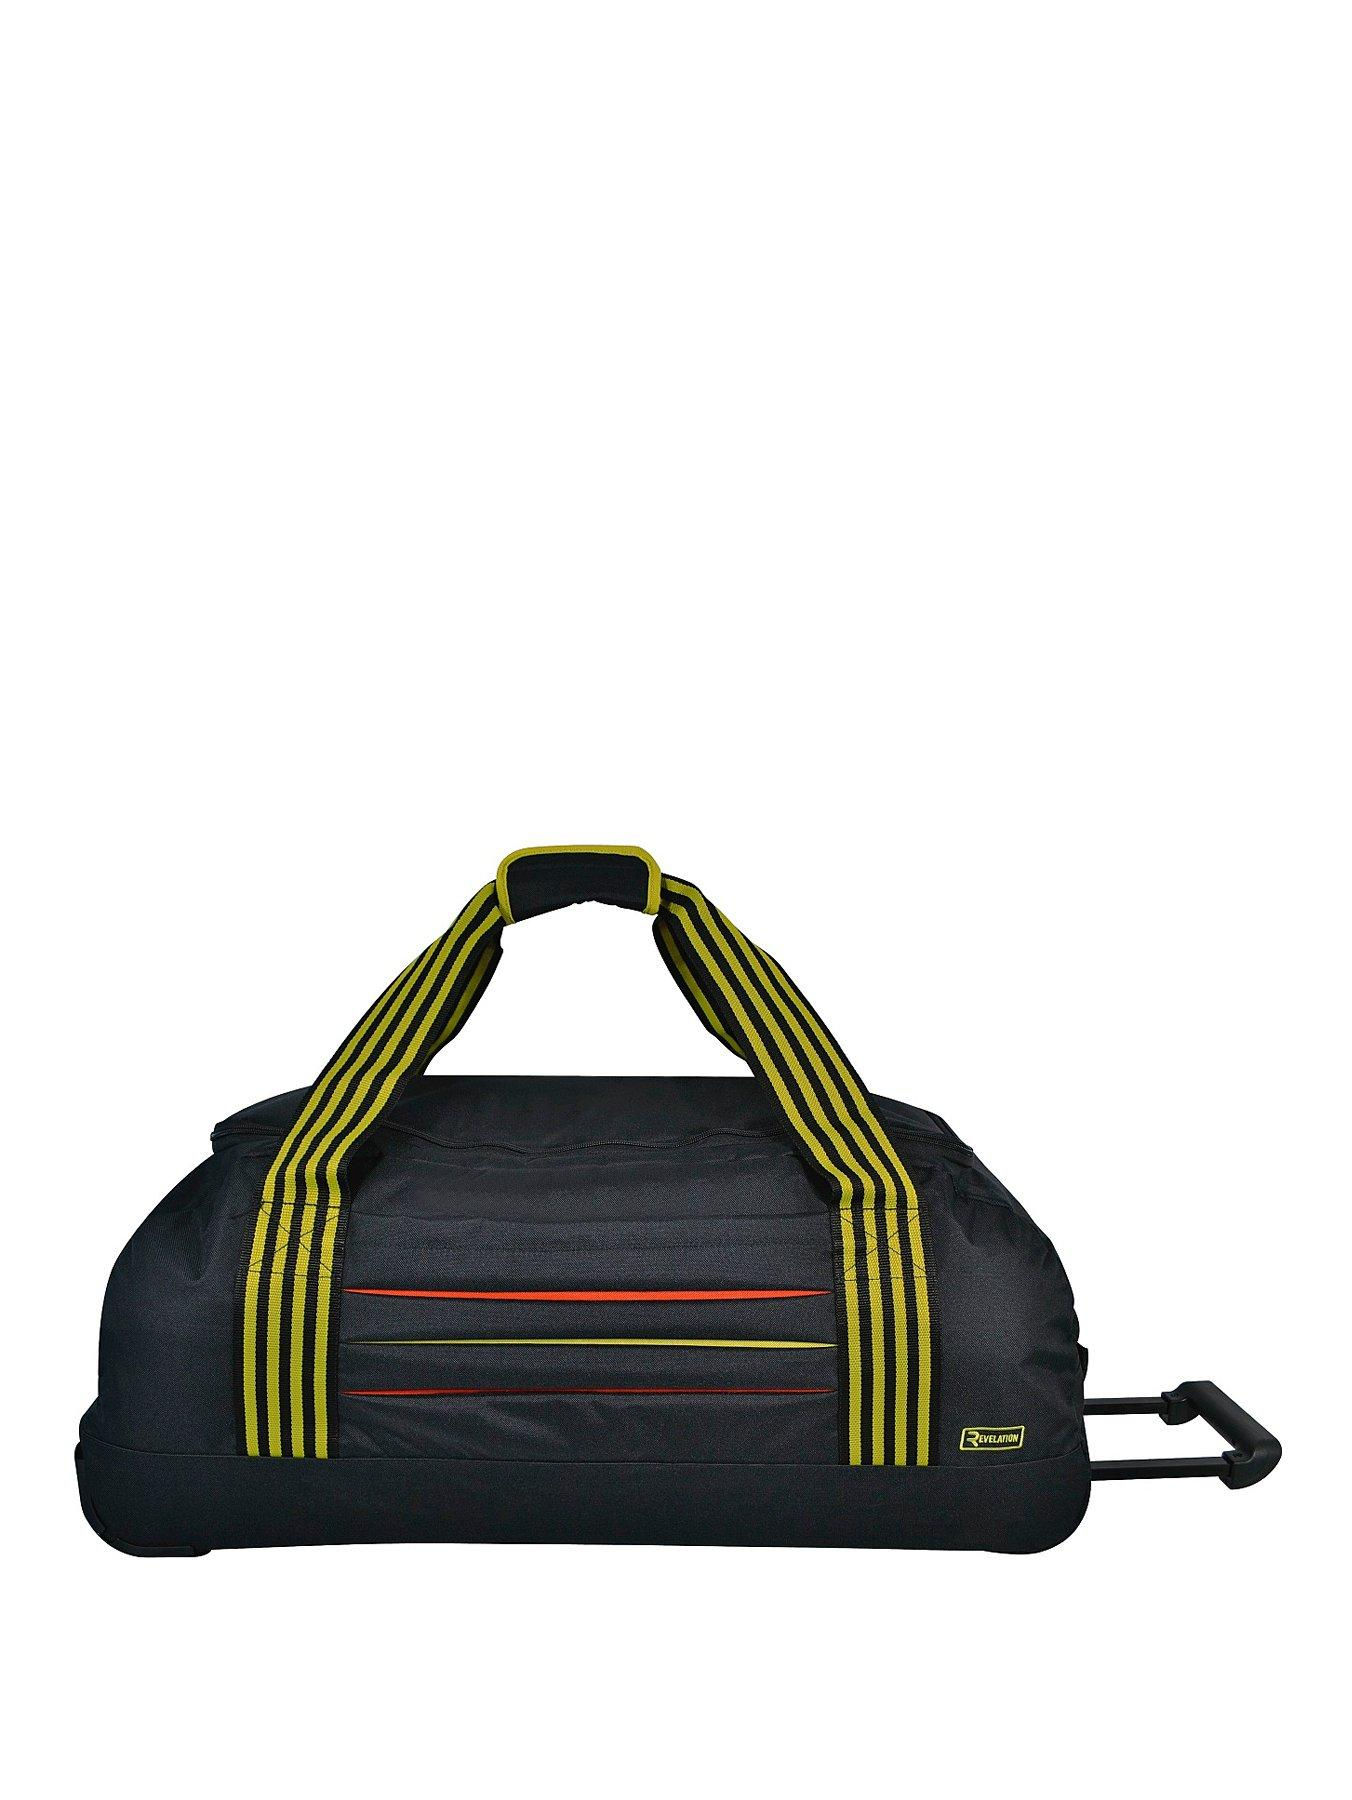 Freerunner Large 82cm Trolley Bag